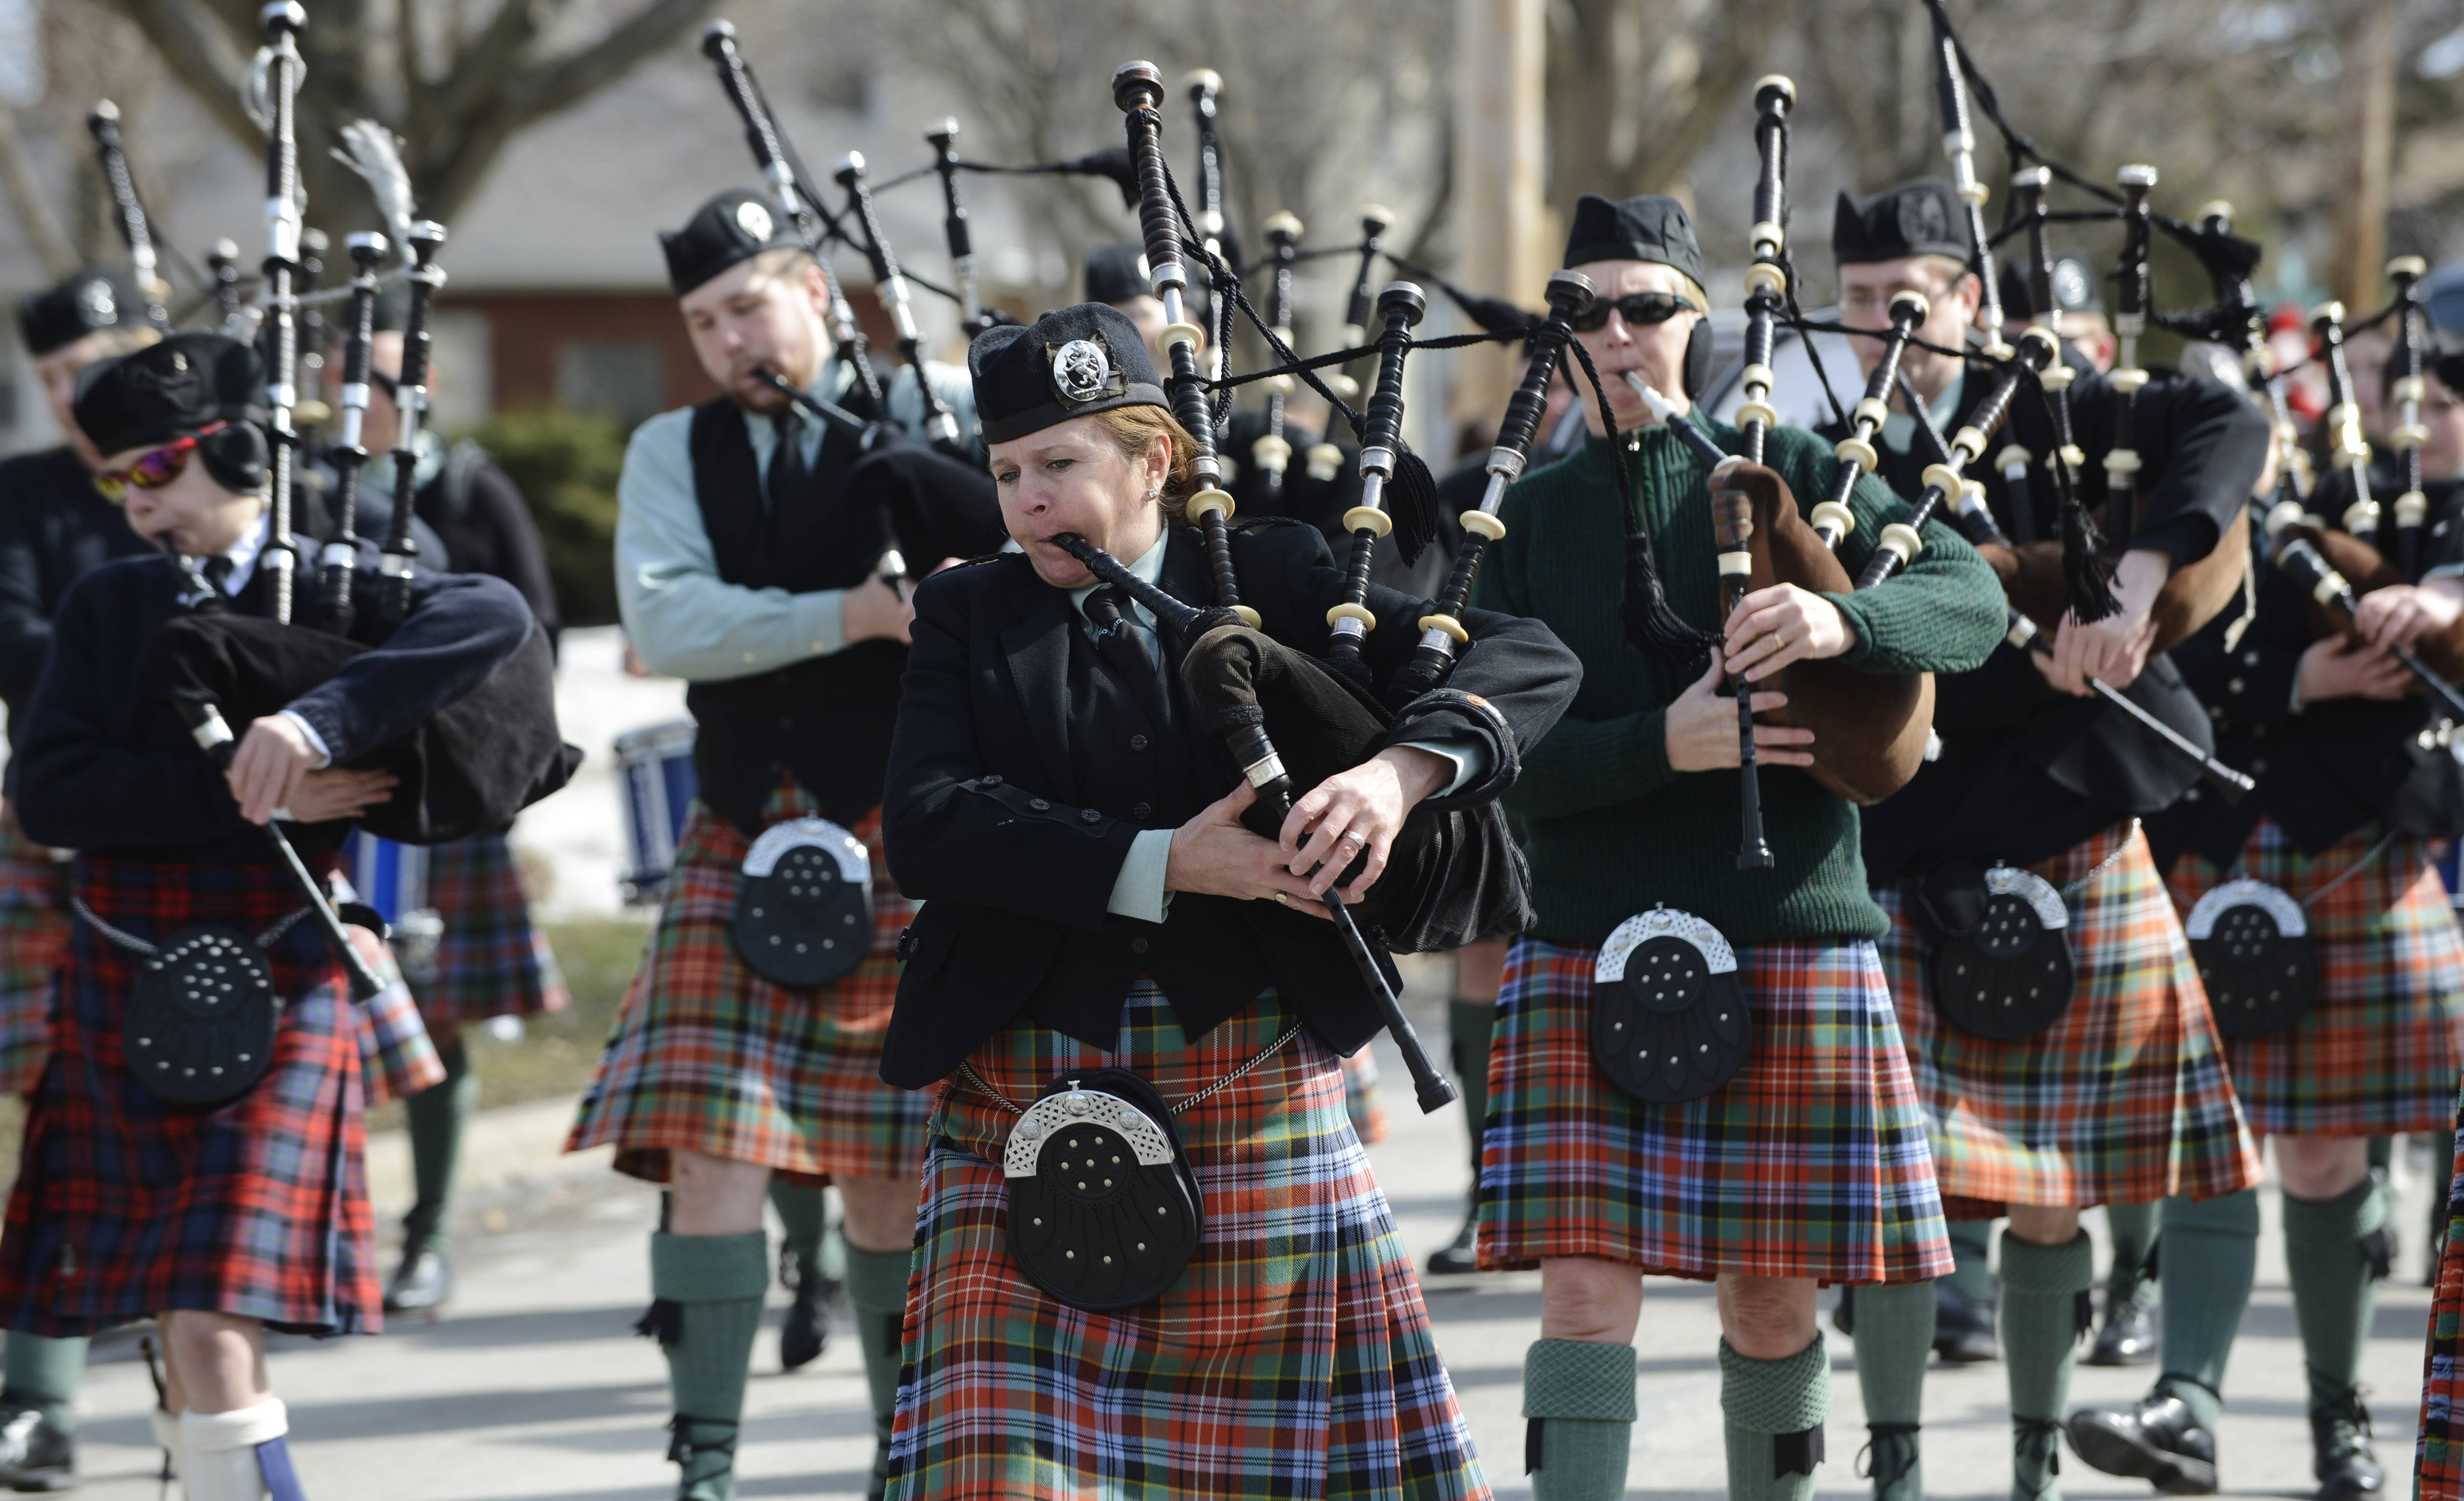 The Midlothian Pipe Band plays during the Palatine St. Patrick's Day Parade Saturday.